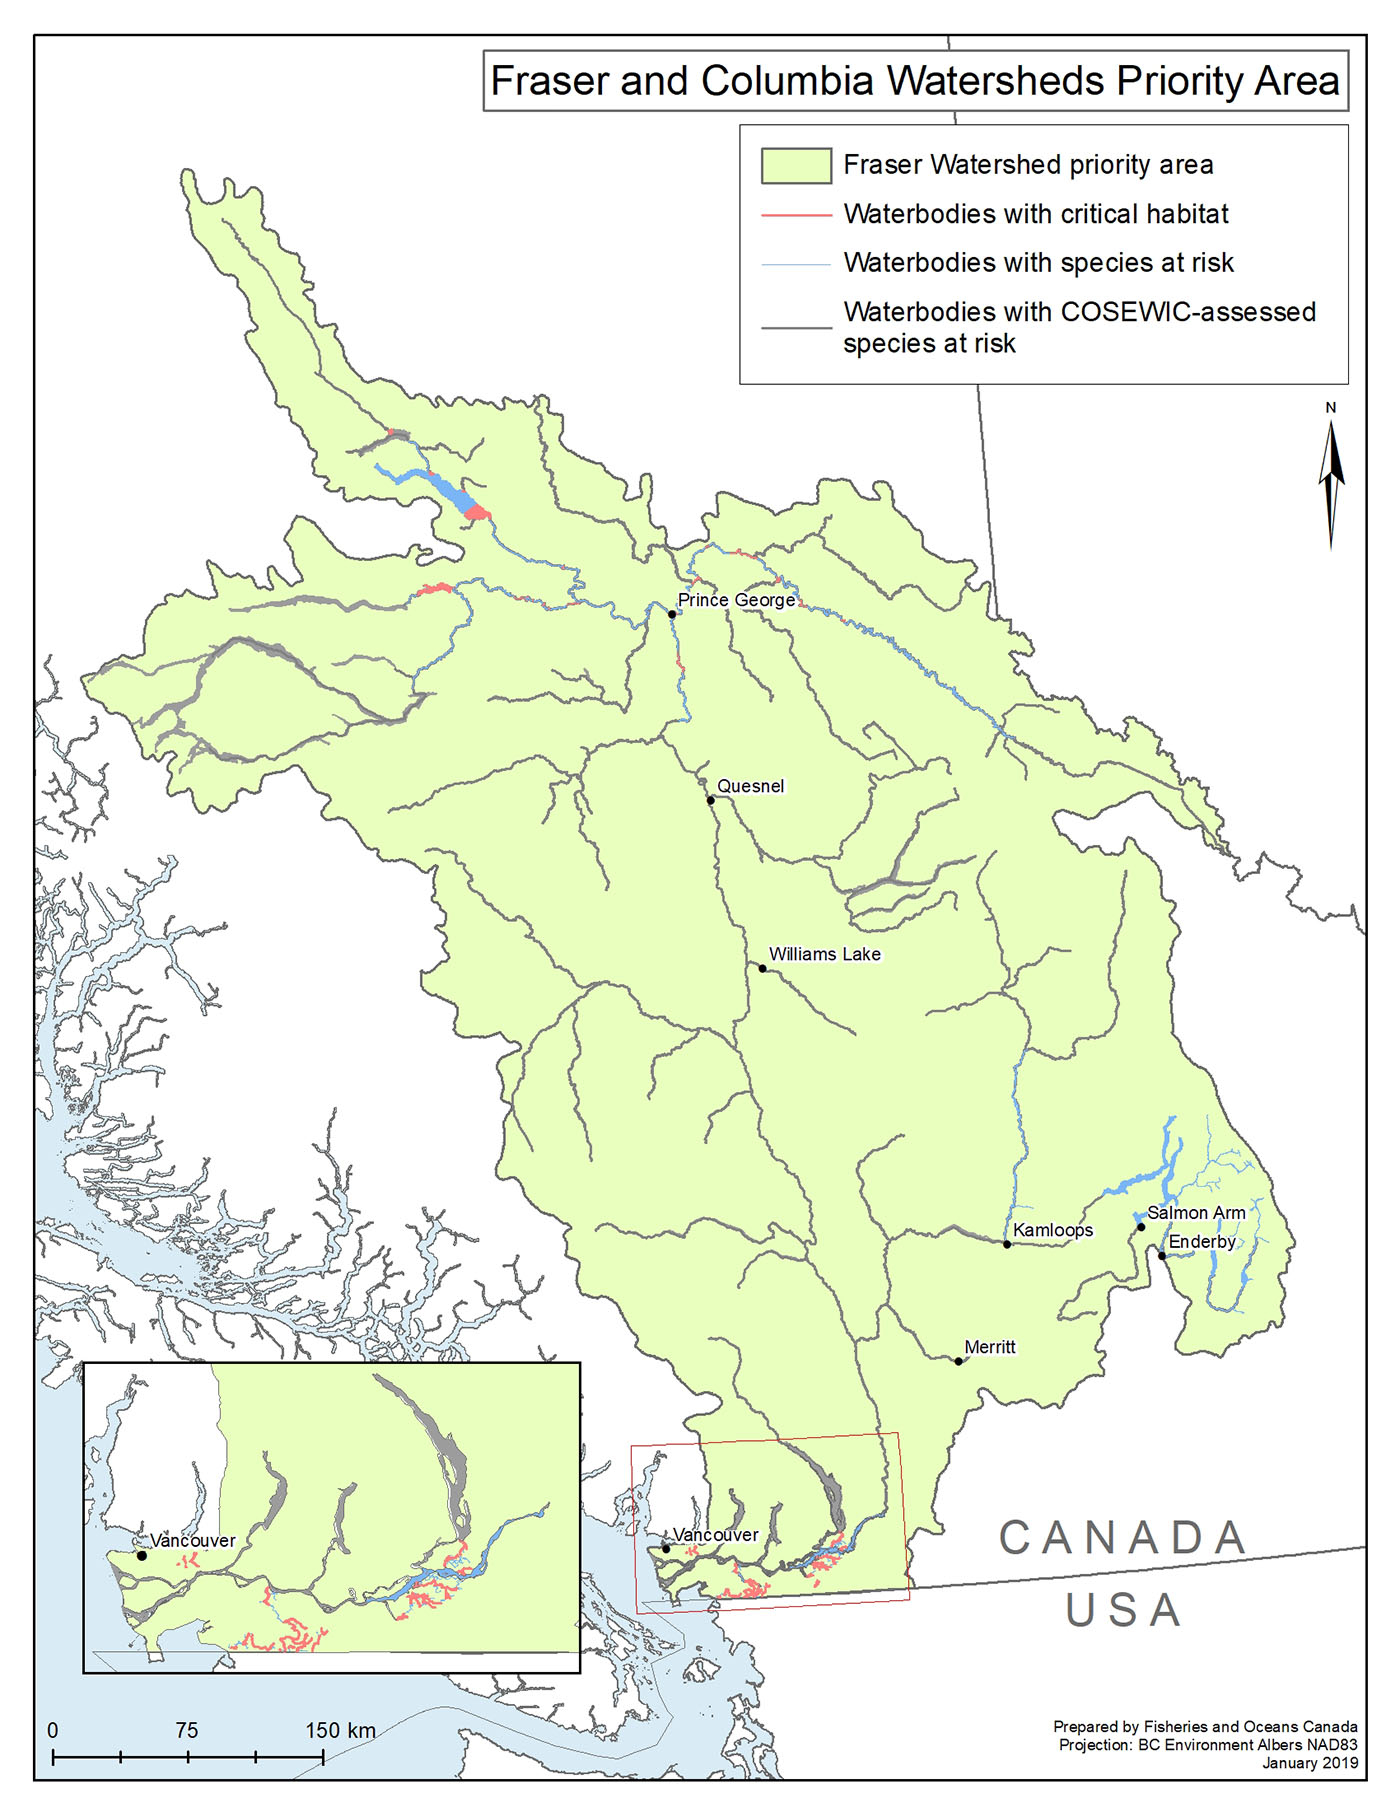 Map Of Canada With Water Bodies.Canada Nature Fund For Aquatic Species At Risk Priority Places And